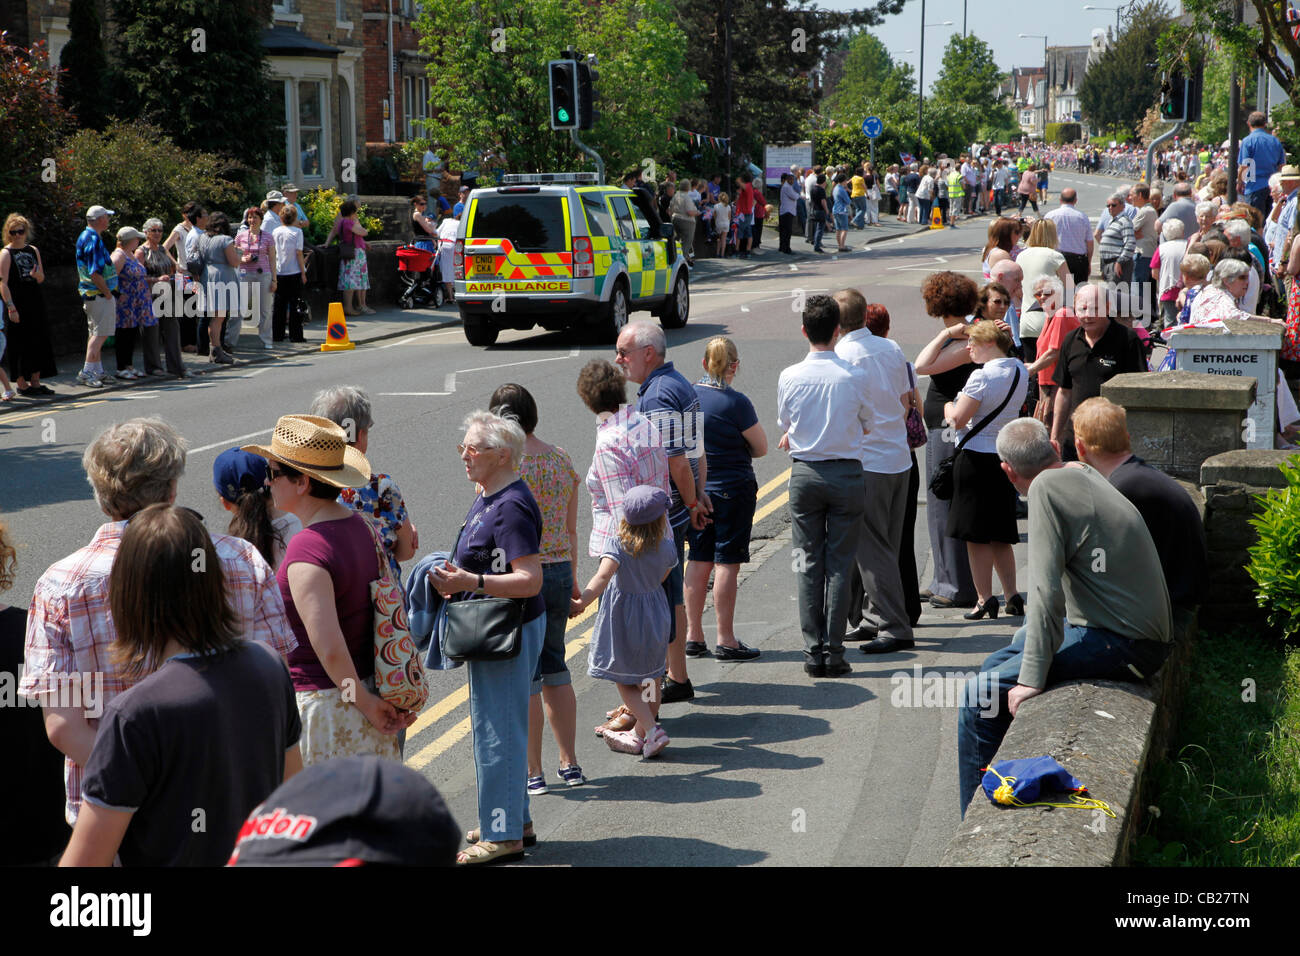 Wednesday 23rd May 2012, Swindon, Wiltshire, UK. Crowd along Bath Road in Swindon waiting for the Olympic Torch - Stock Image